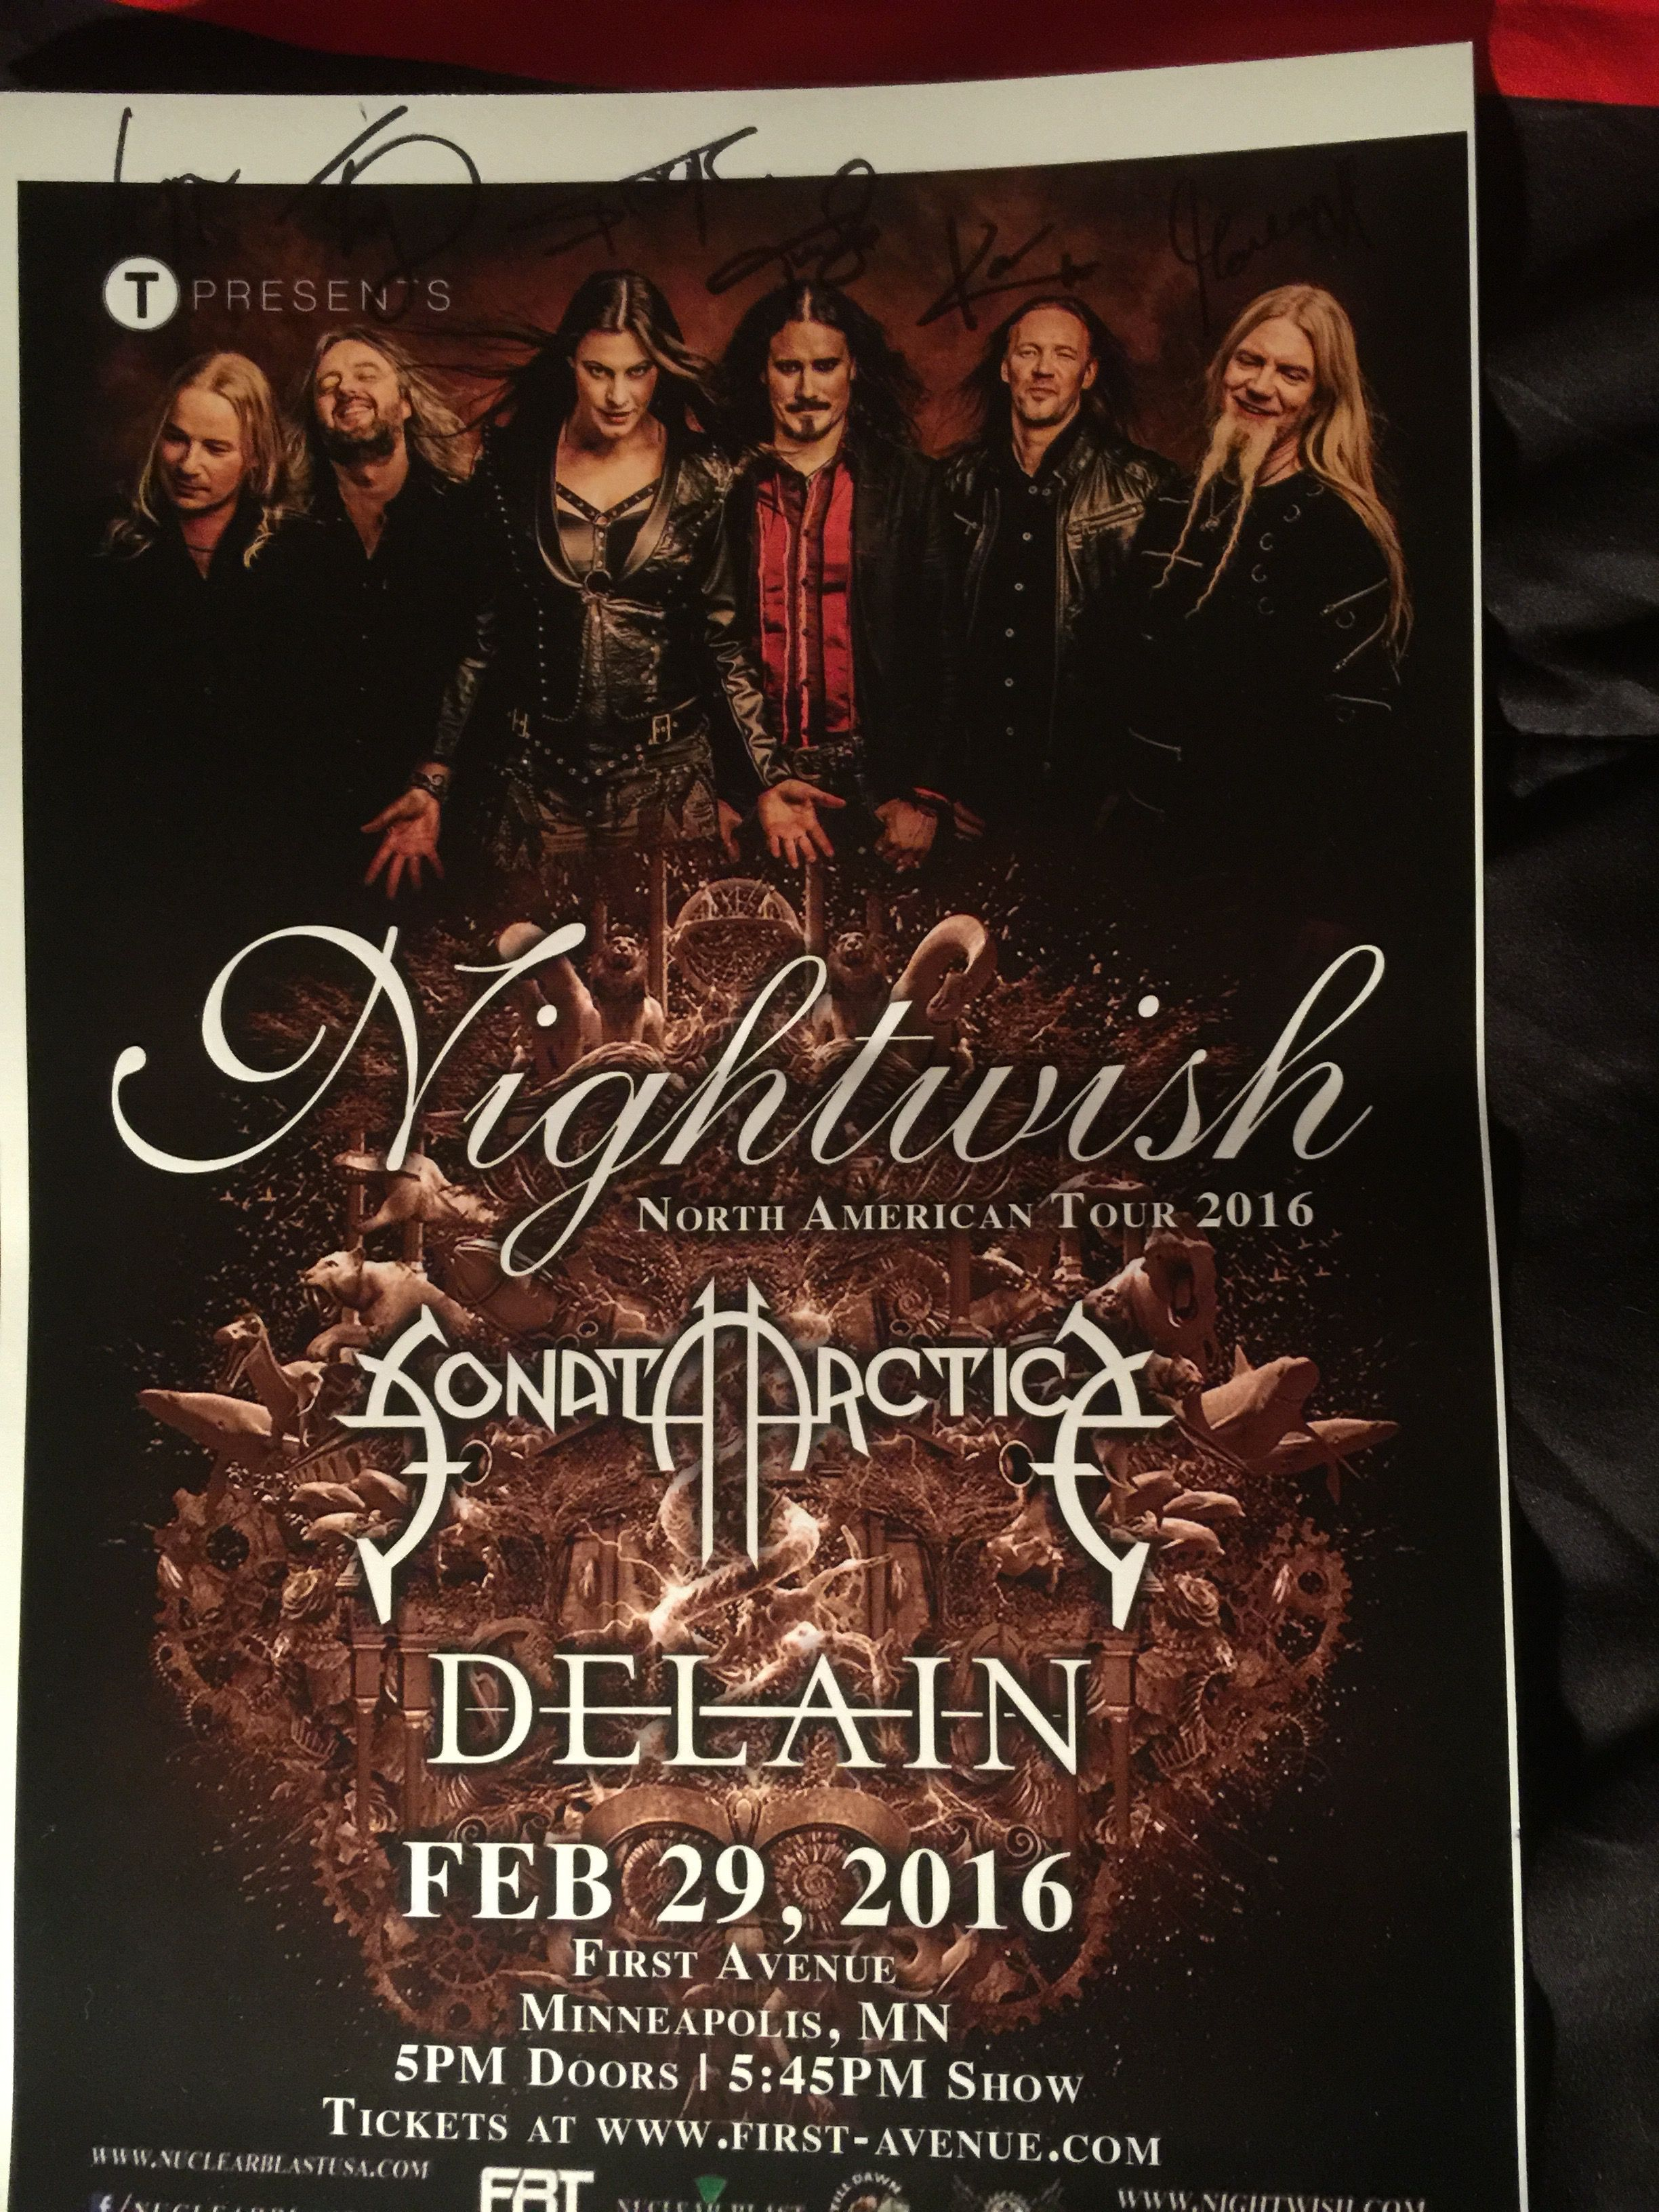 My Autographed Tour Poster From The Nightwish Meet And Greet